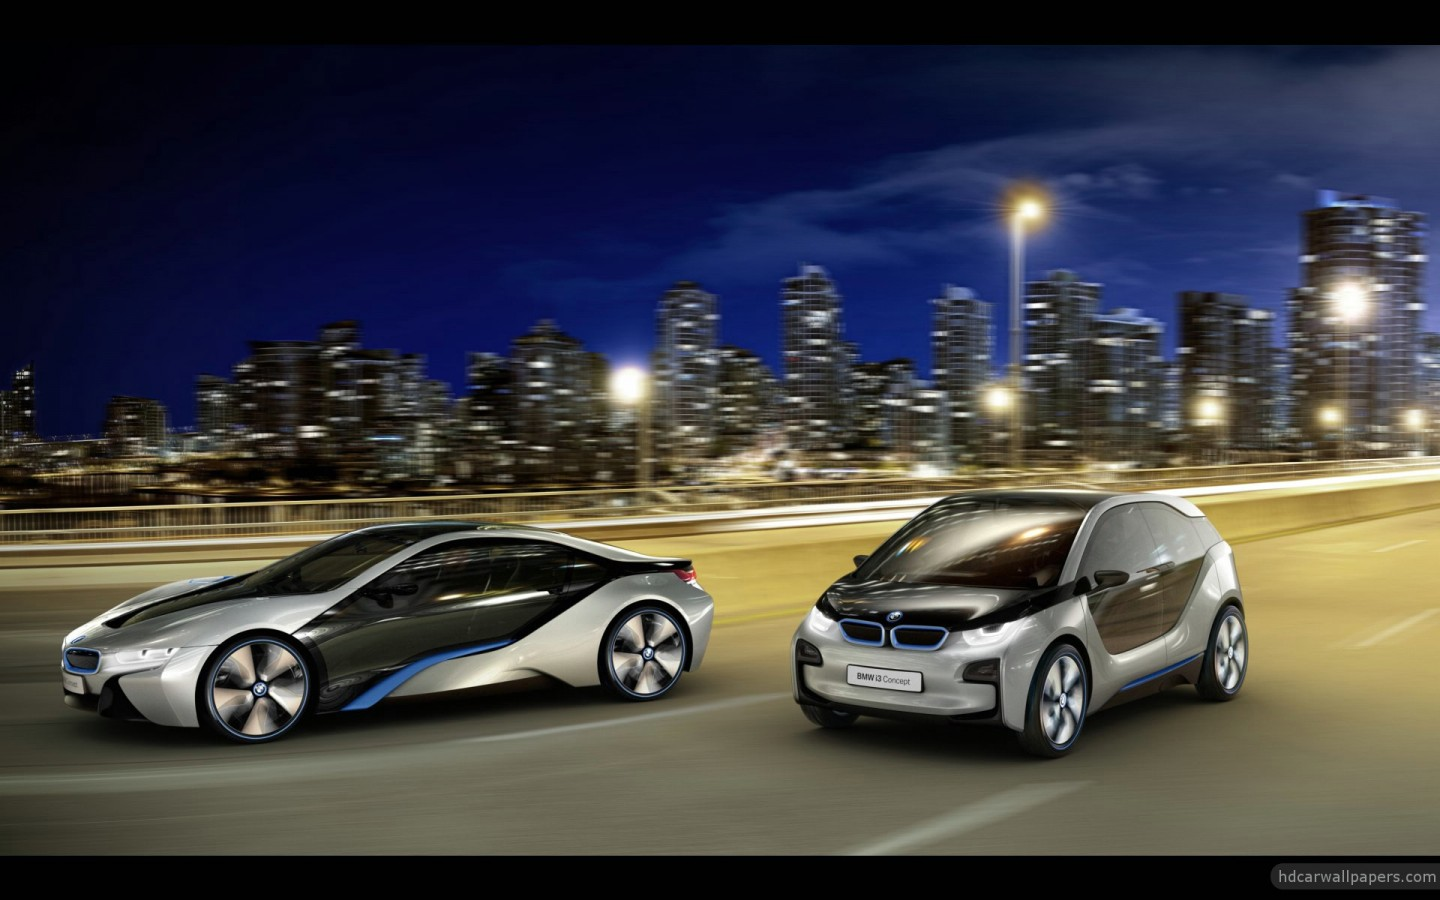 2012 Bmw I8 Amp I3 Concept Cars 3 Wallpaper Hd Car